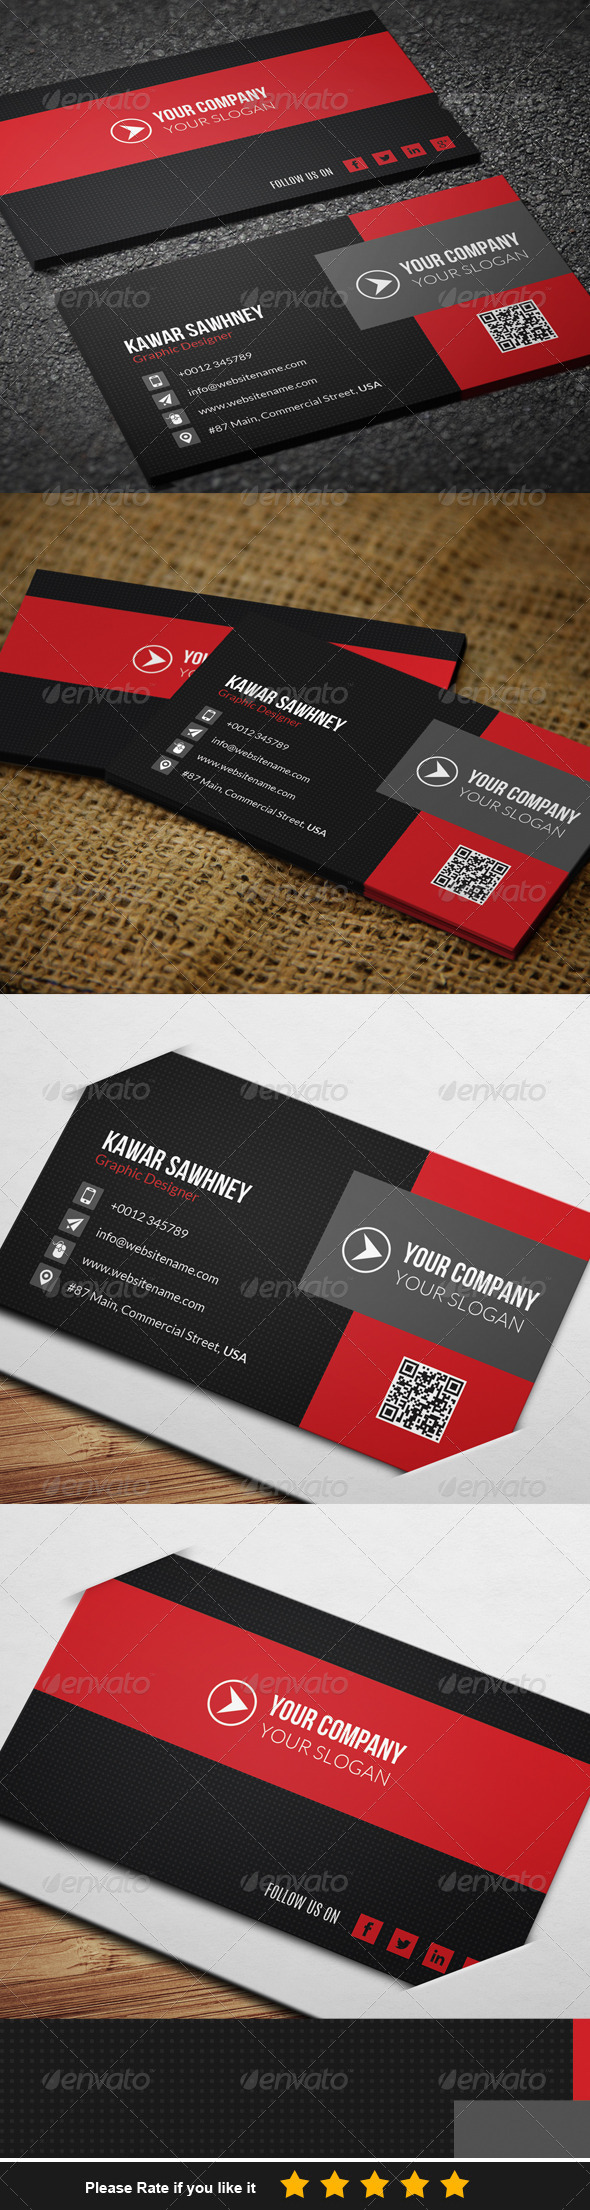 GraphicRiver Corporate Business Card 3 7700095